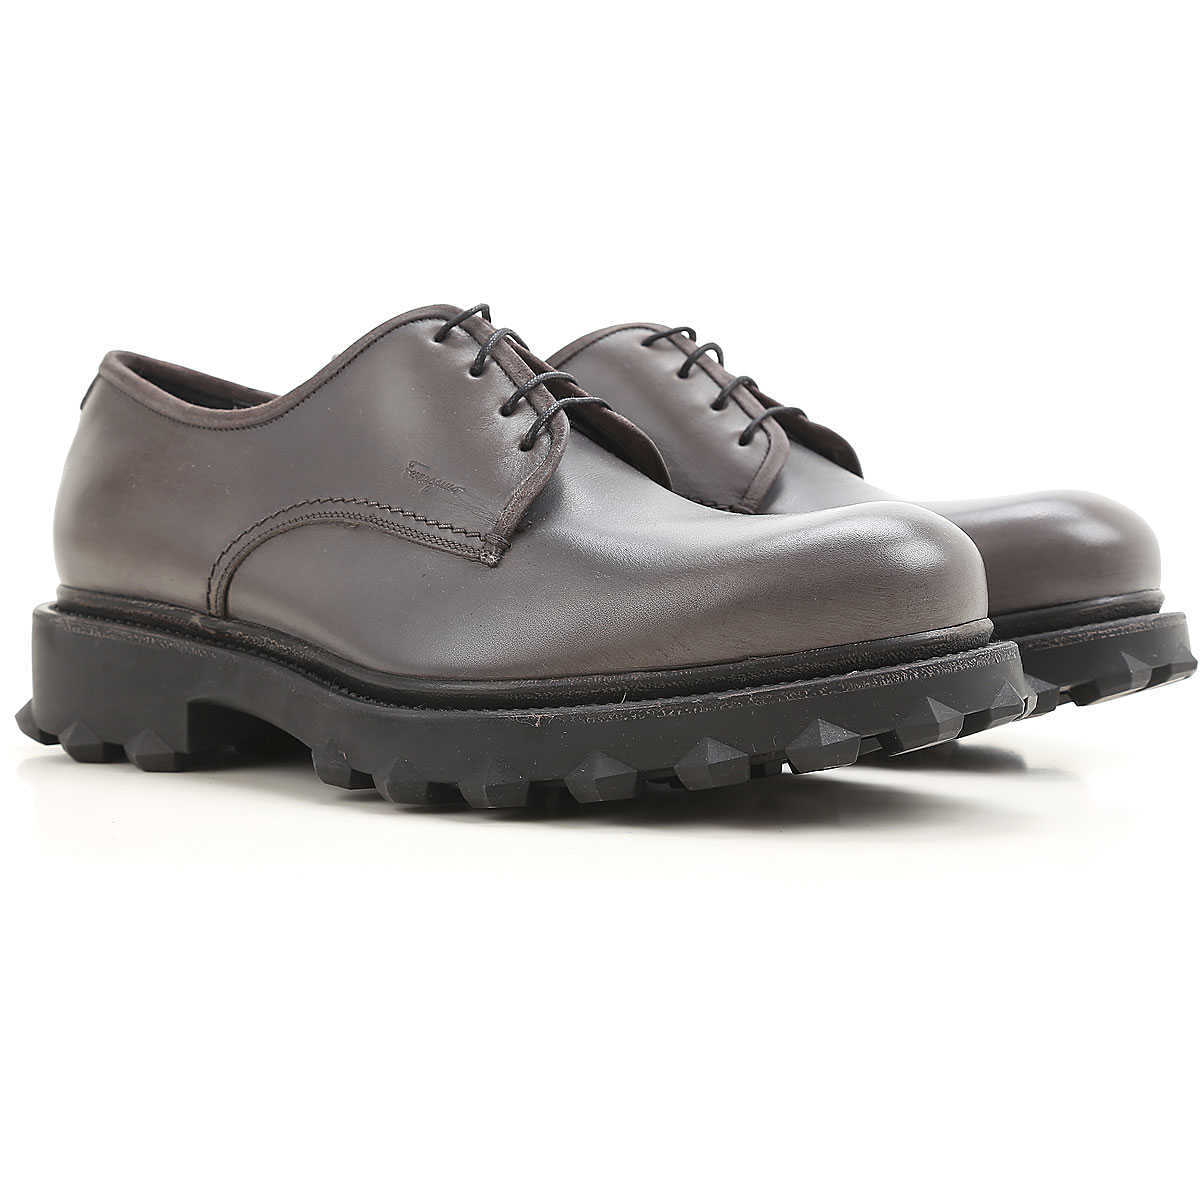 Salvatore Ferragamo Lace Up Shoes for Men Oxfords 6 6.5 9 Derbies and Brogues On Sale in Outlet UK - GOOFASH